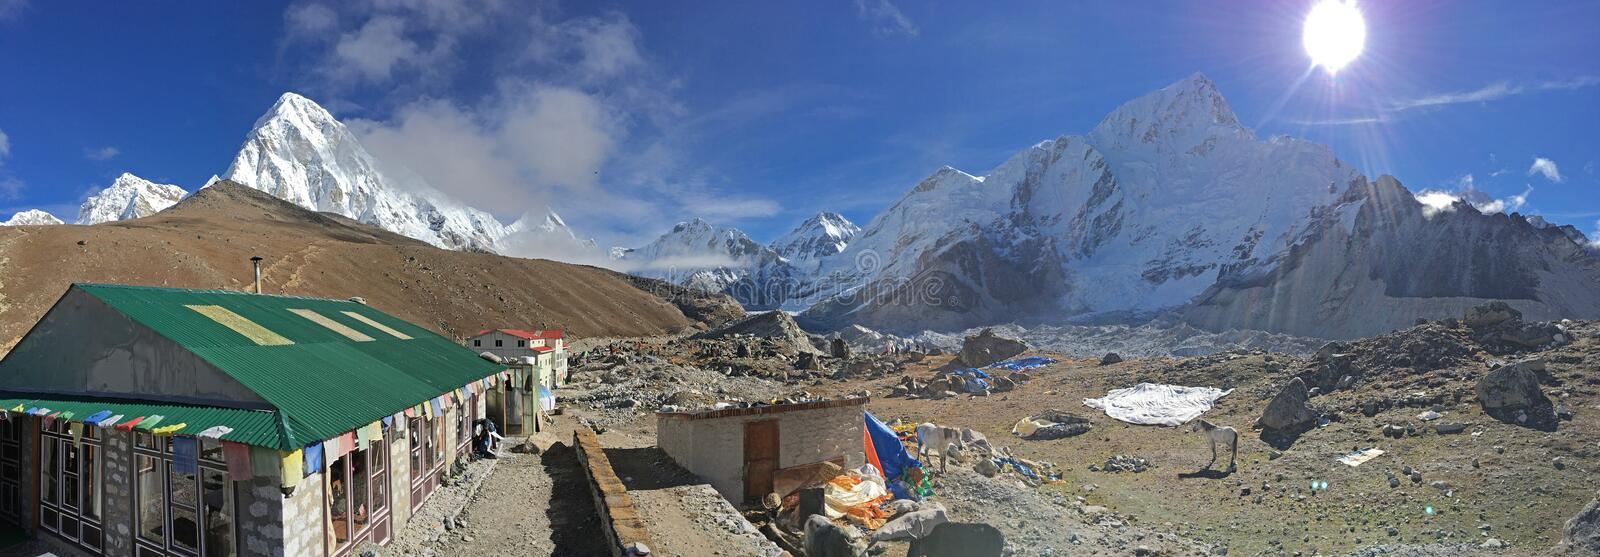 Beautiful weather at Gorak Shep with Nepalese guest houses and snow capped Himalayan range in the background. The sun is shinnig bright and there are horses royalty free stock photography